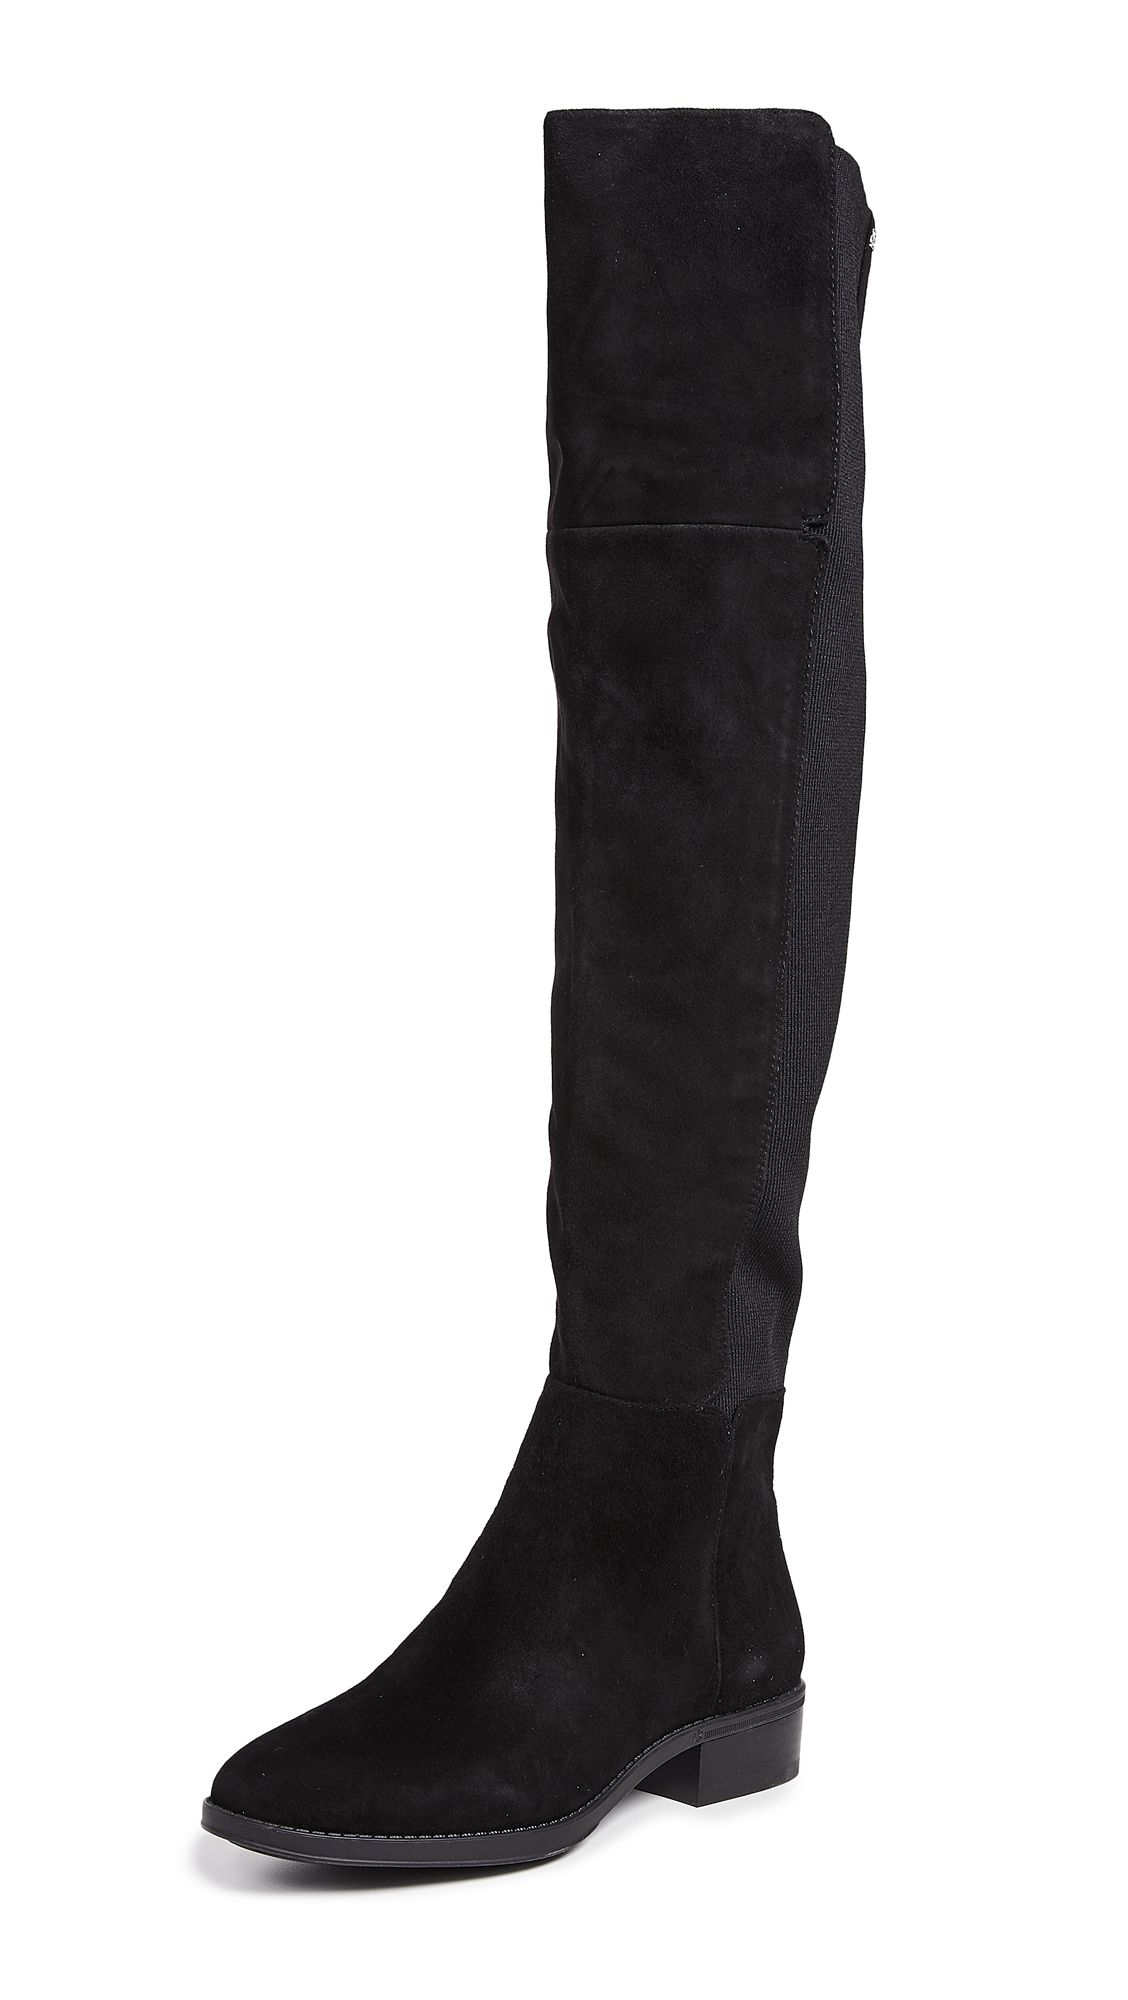 c37ad74972e47 Pam Boots by Sam Edelman in Black | LUX Woman | Boots, Shoes, Fashion